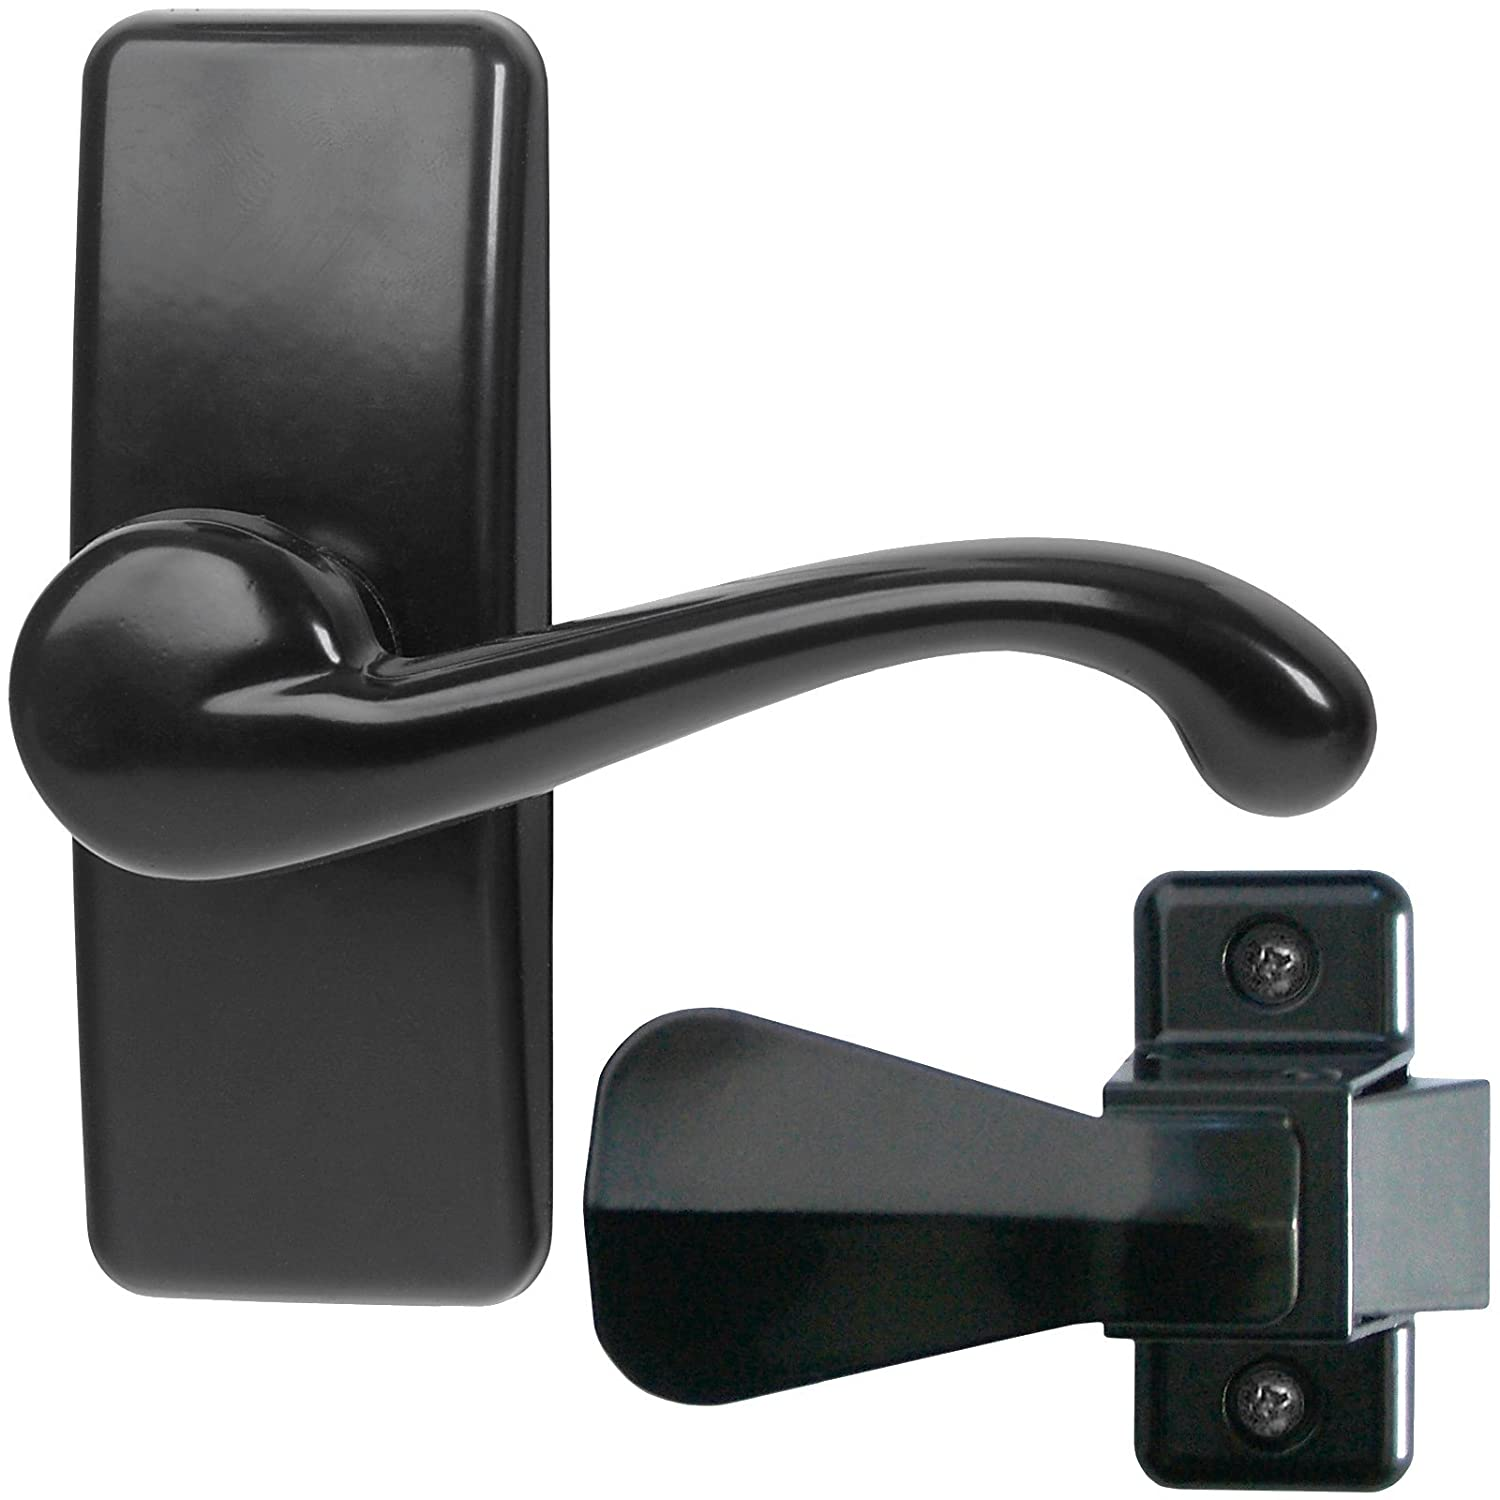 Ideal Security GL Lever Set For Storm And Screen Doors A Touch Of Class,  Easy To Install Black     Amazon.com